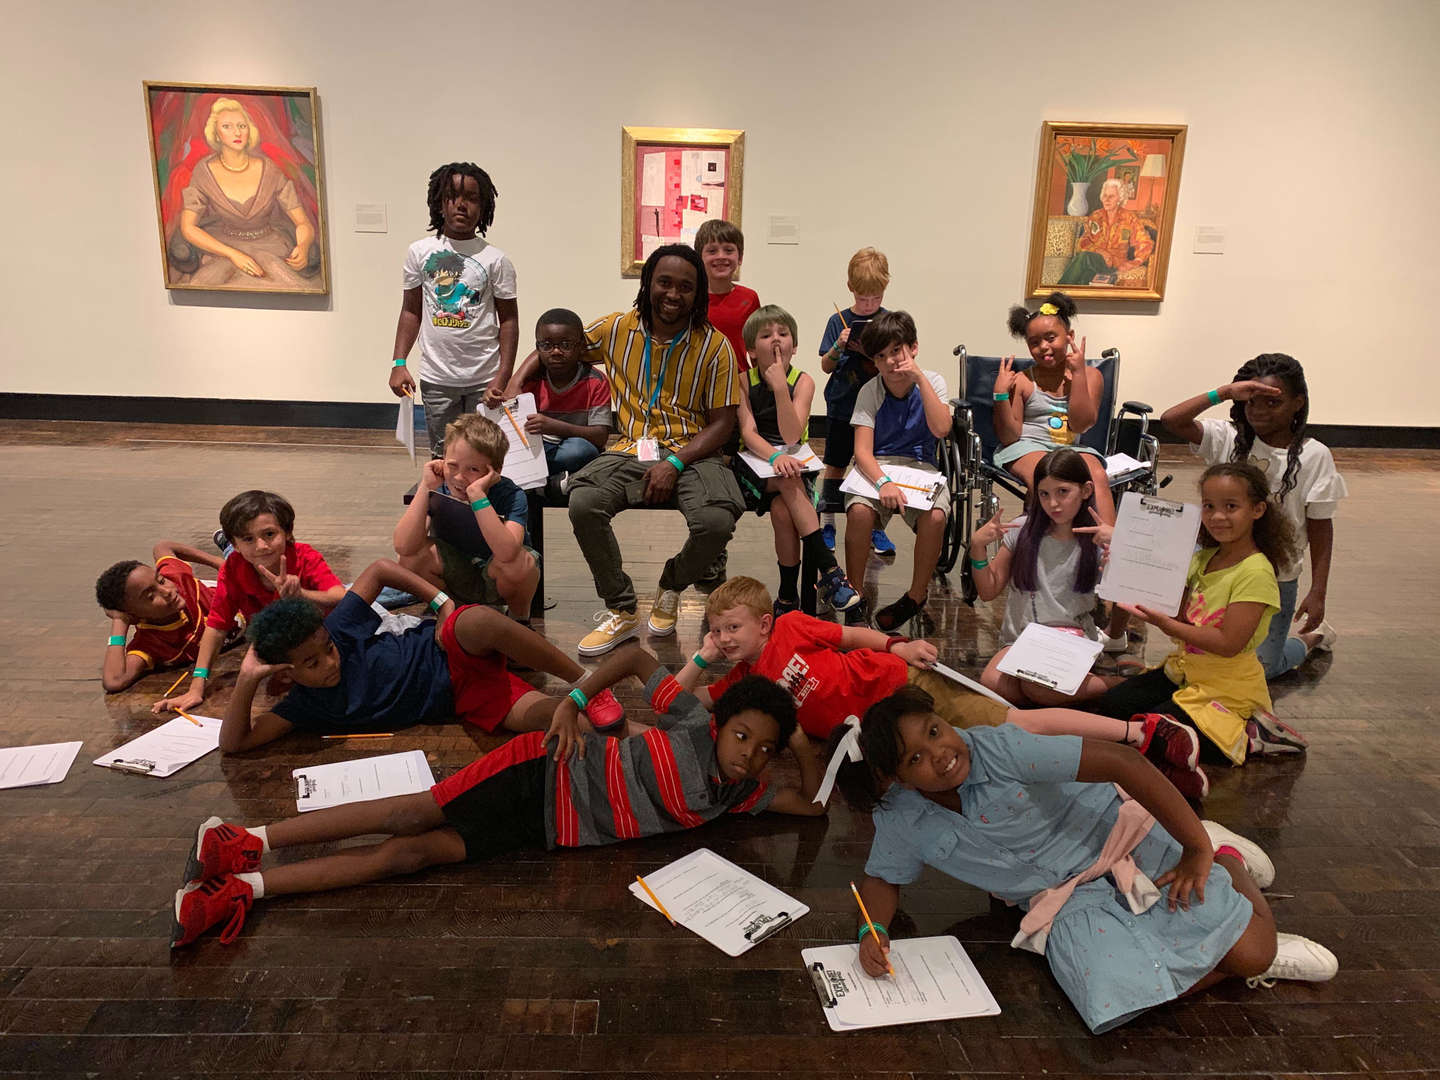 Students and their teacher at the museum